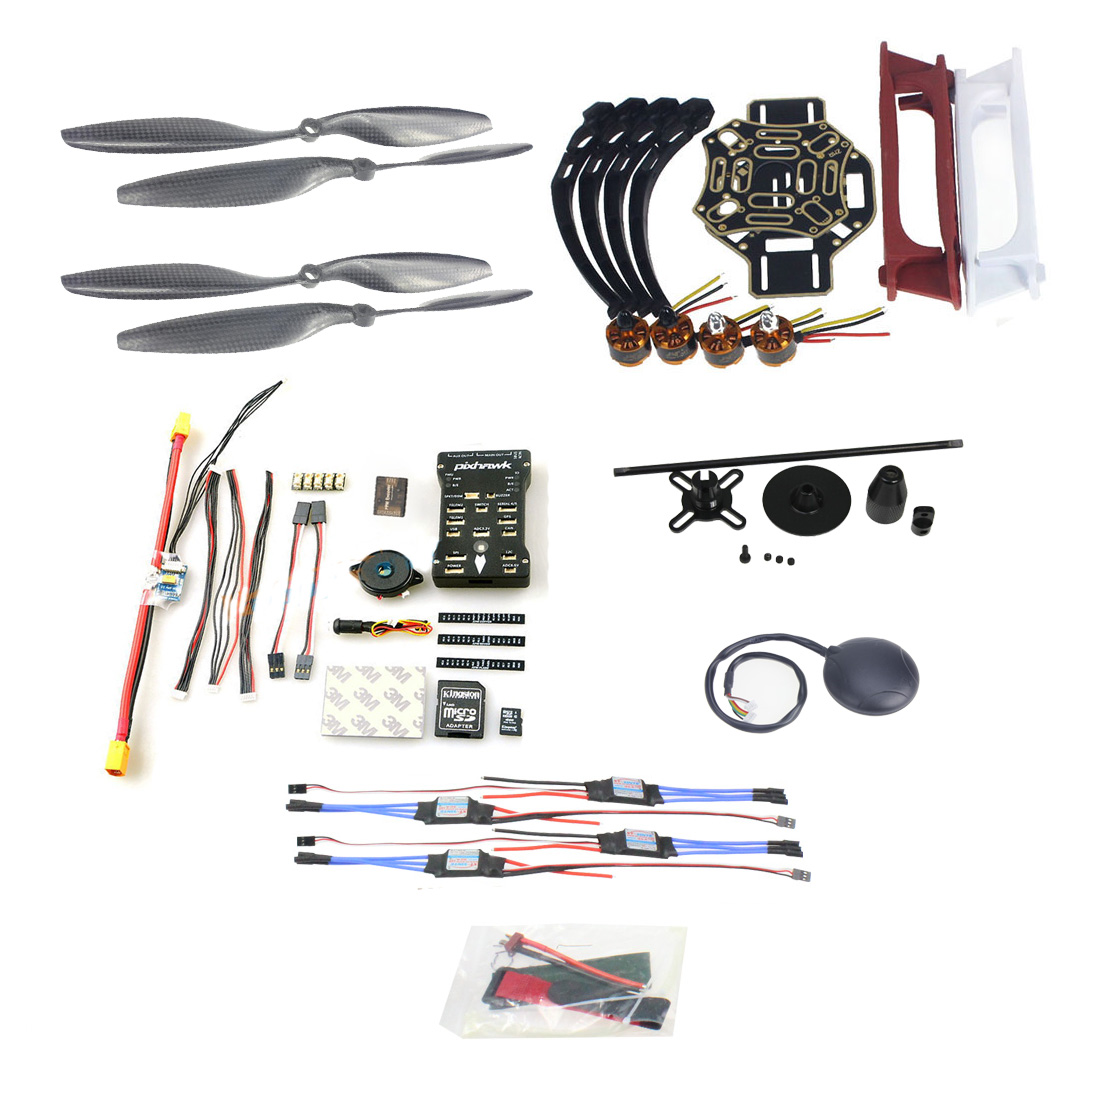 F02192-AD DIY FPV Drone Quadcopter 4-axle Aircraft Kit F450 450 Frame PXI PX4 Flight Control 920KV Motor GPS 1043 Propes 30A ESC